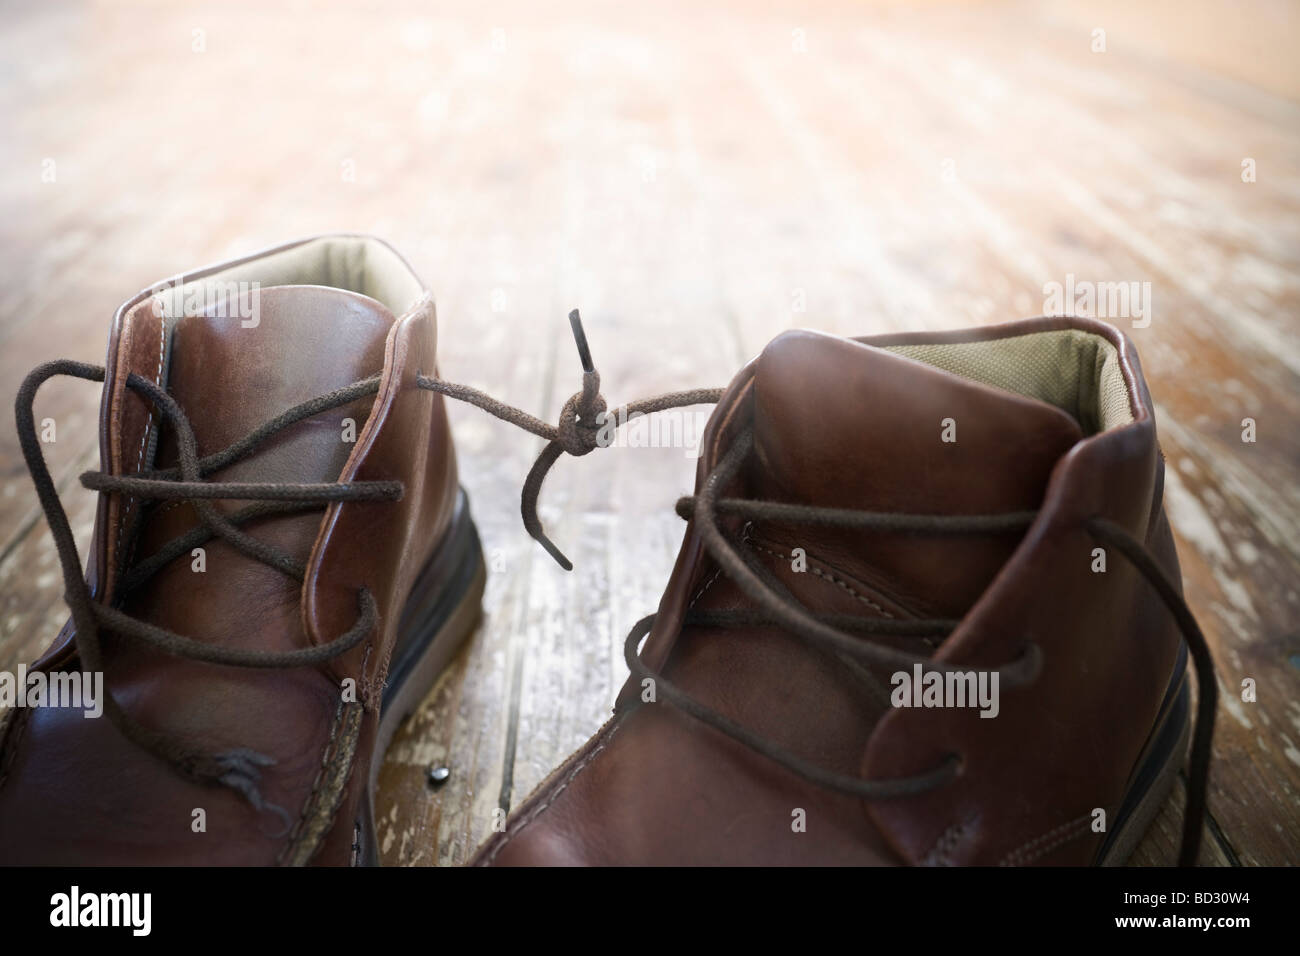 Tied Knot Stock Photos Images Alamy Redknot Shoes Tech Brown Boot Laces Together Image